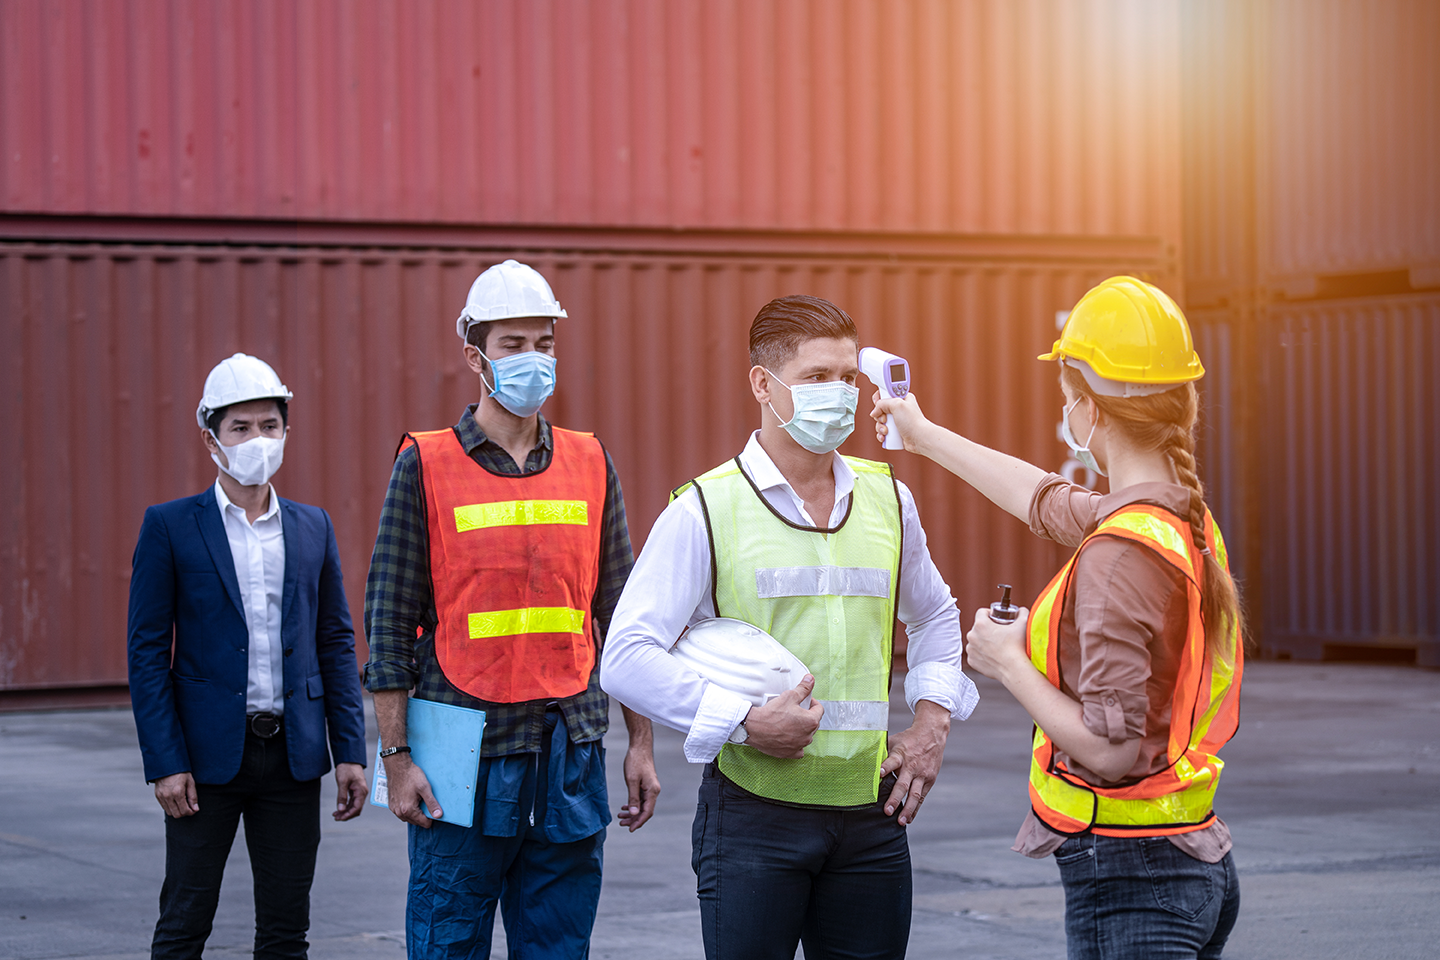 workers standing in line wearing PPE sustainable masks to be checked with a digital temperature device